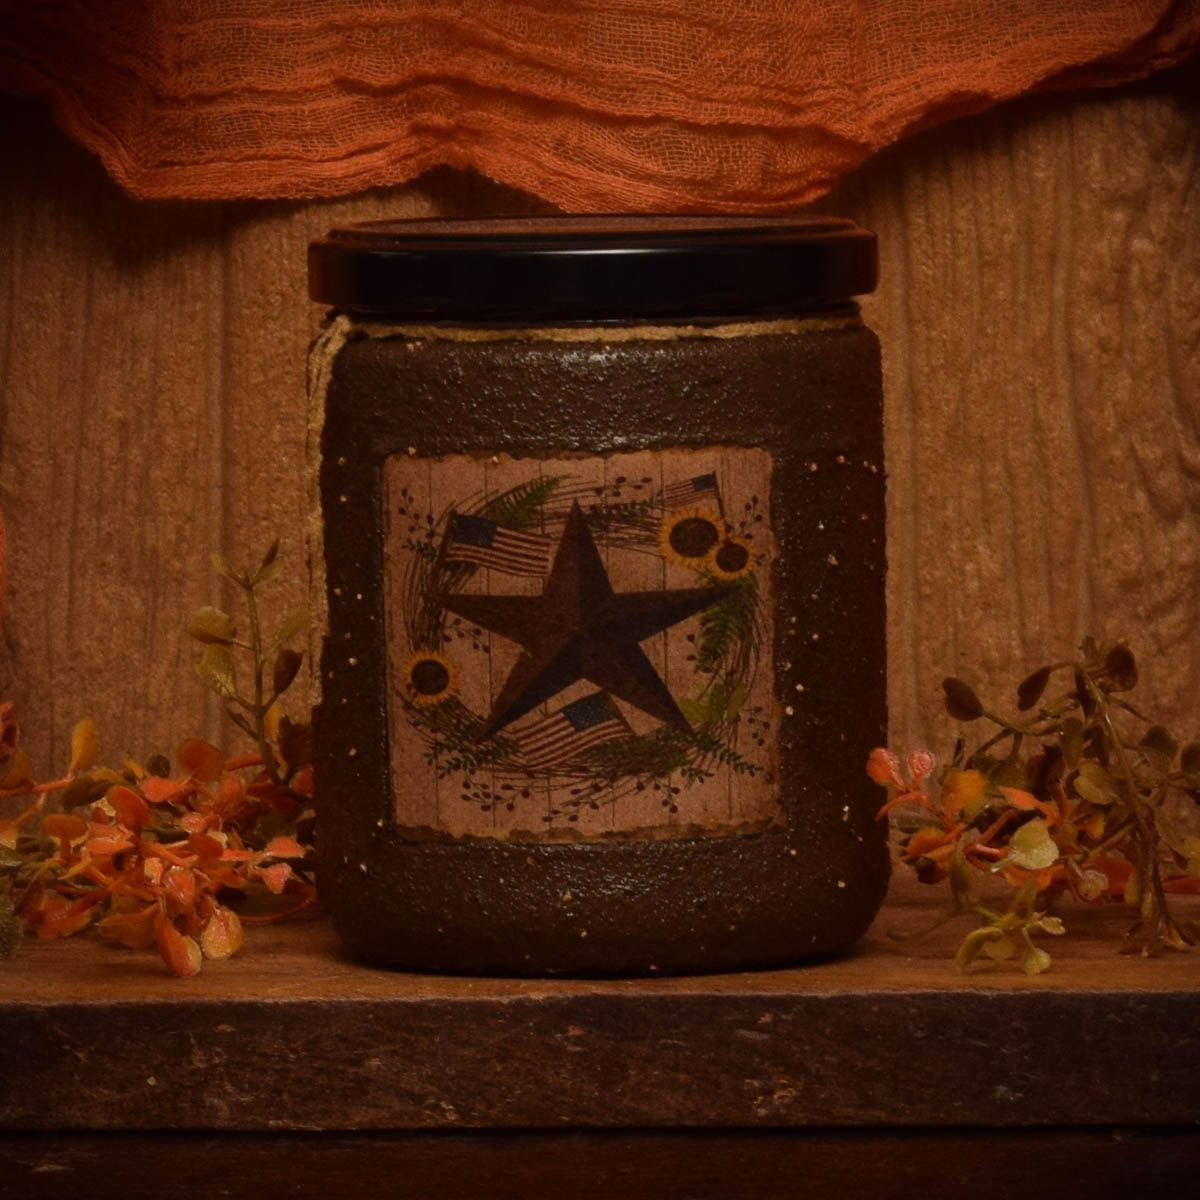 Barn Star Spice 16 oz Jar Candle